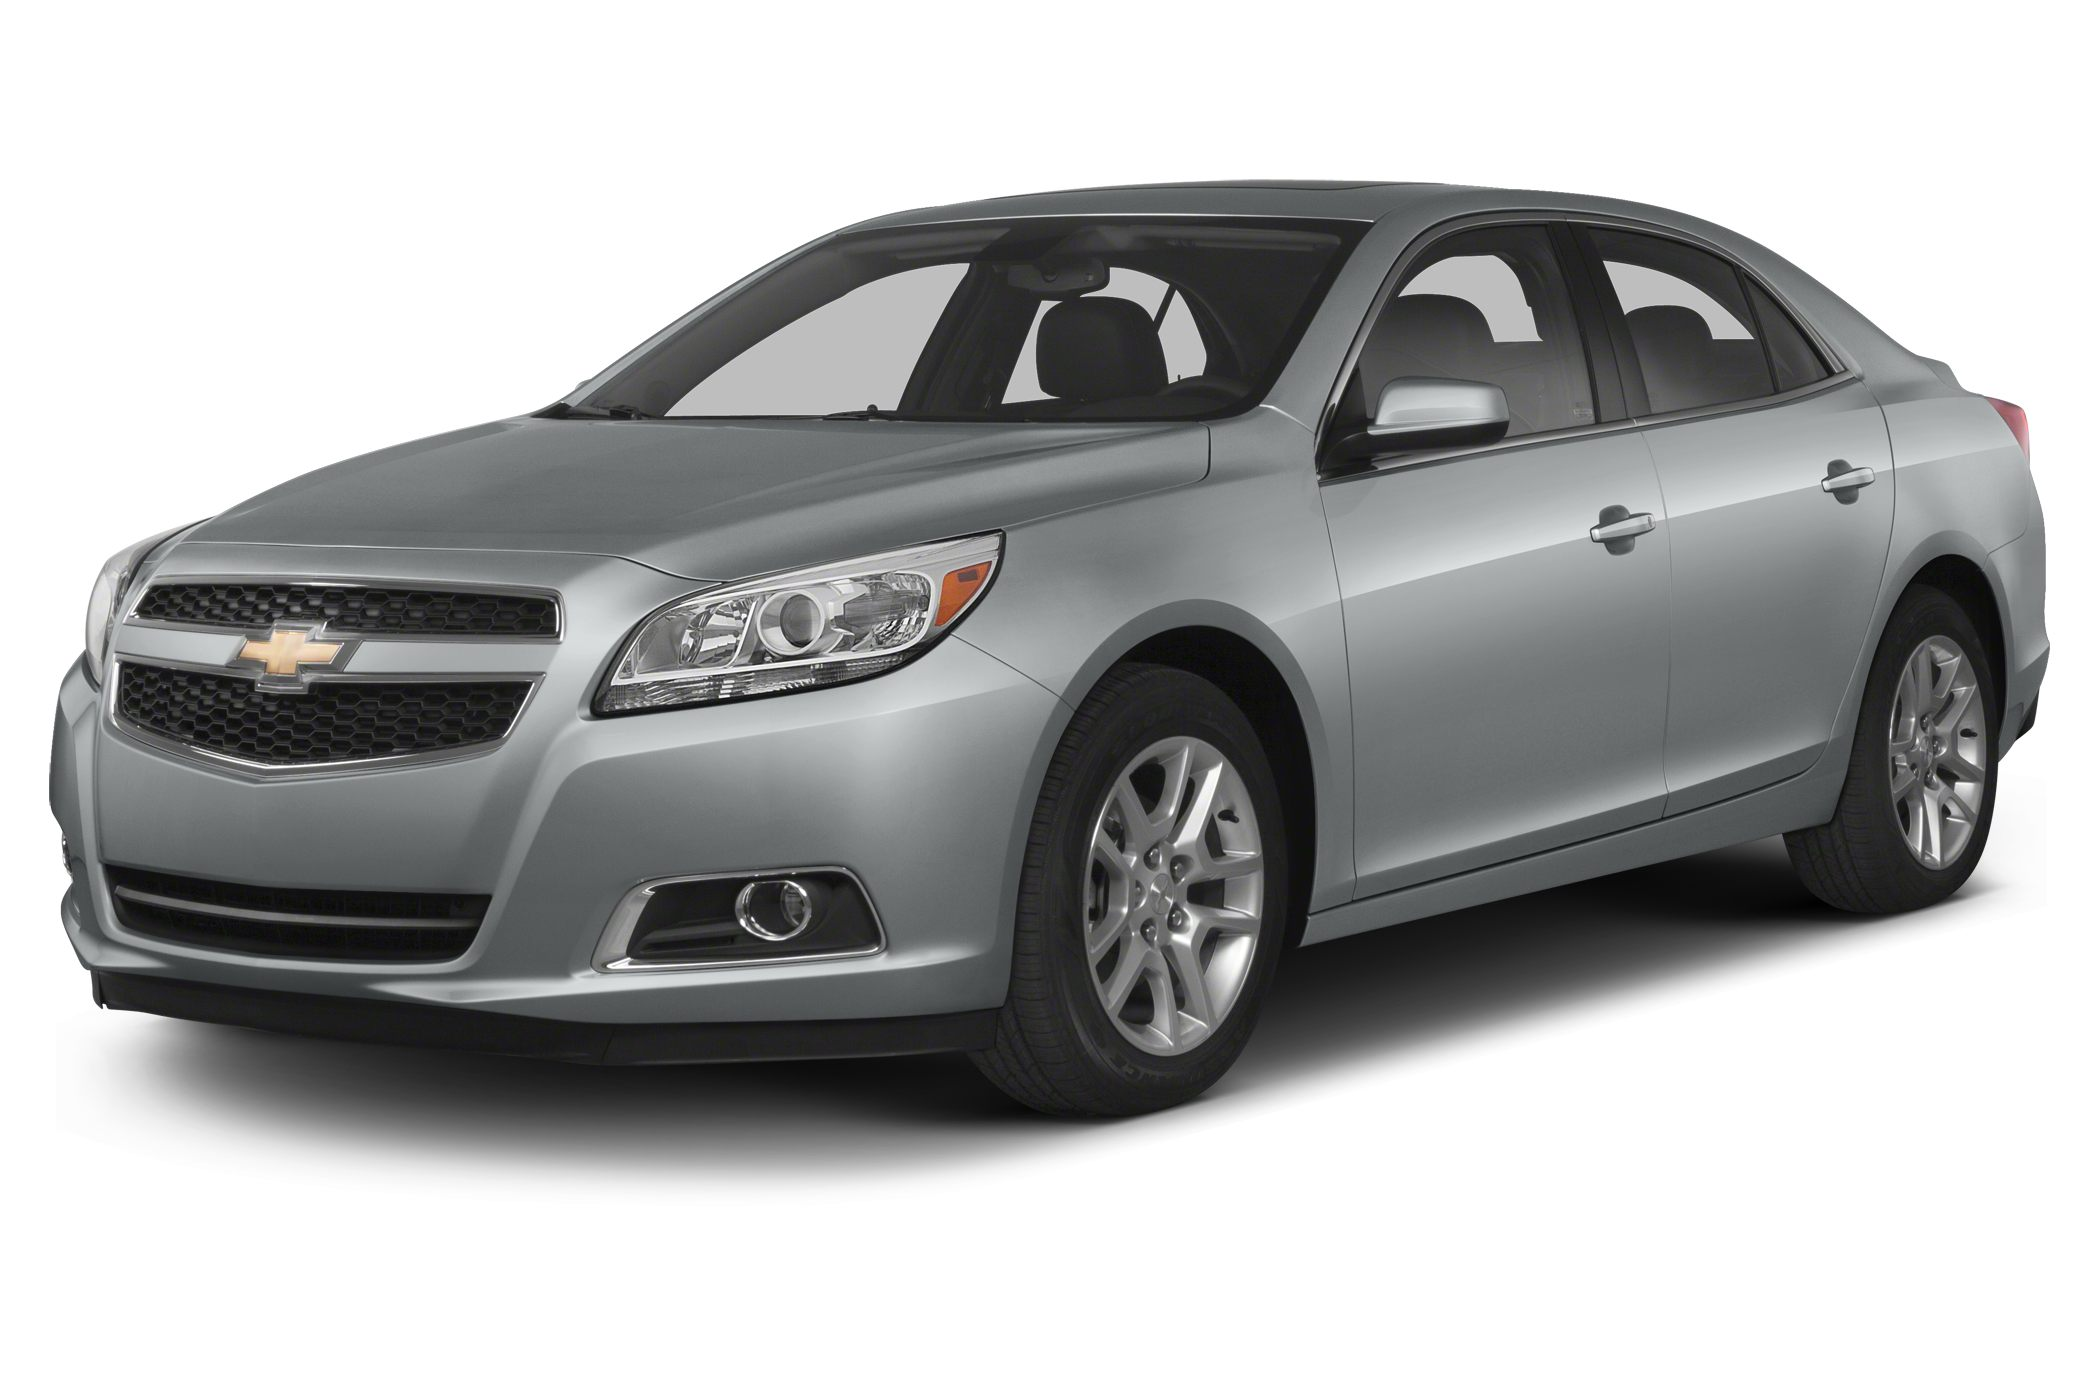 2013 Chevrolet Malibu Eco Sedan for sale in Waurika for $27,150 with 0 miles